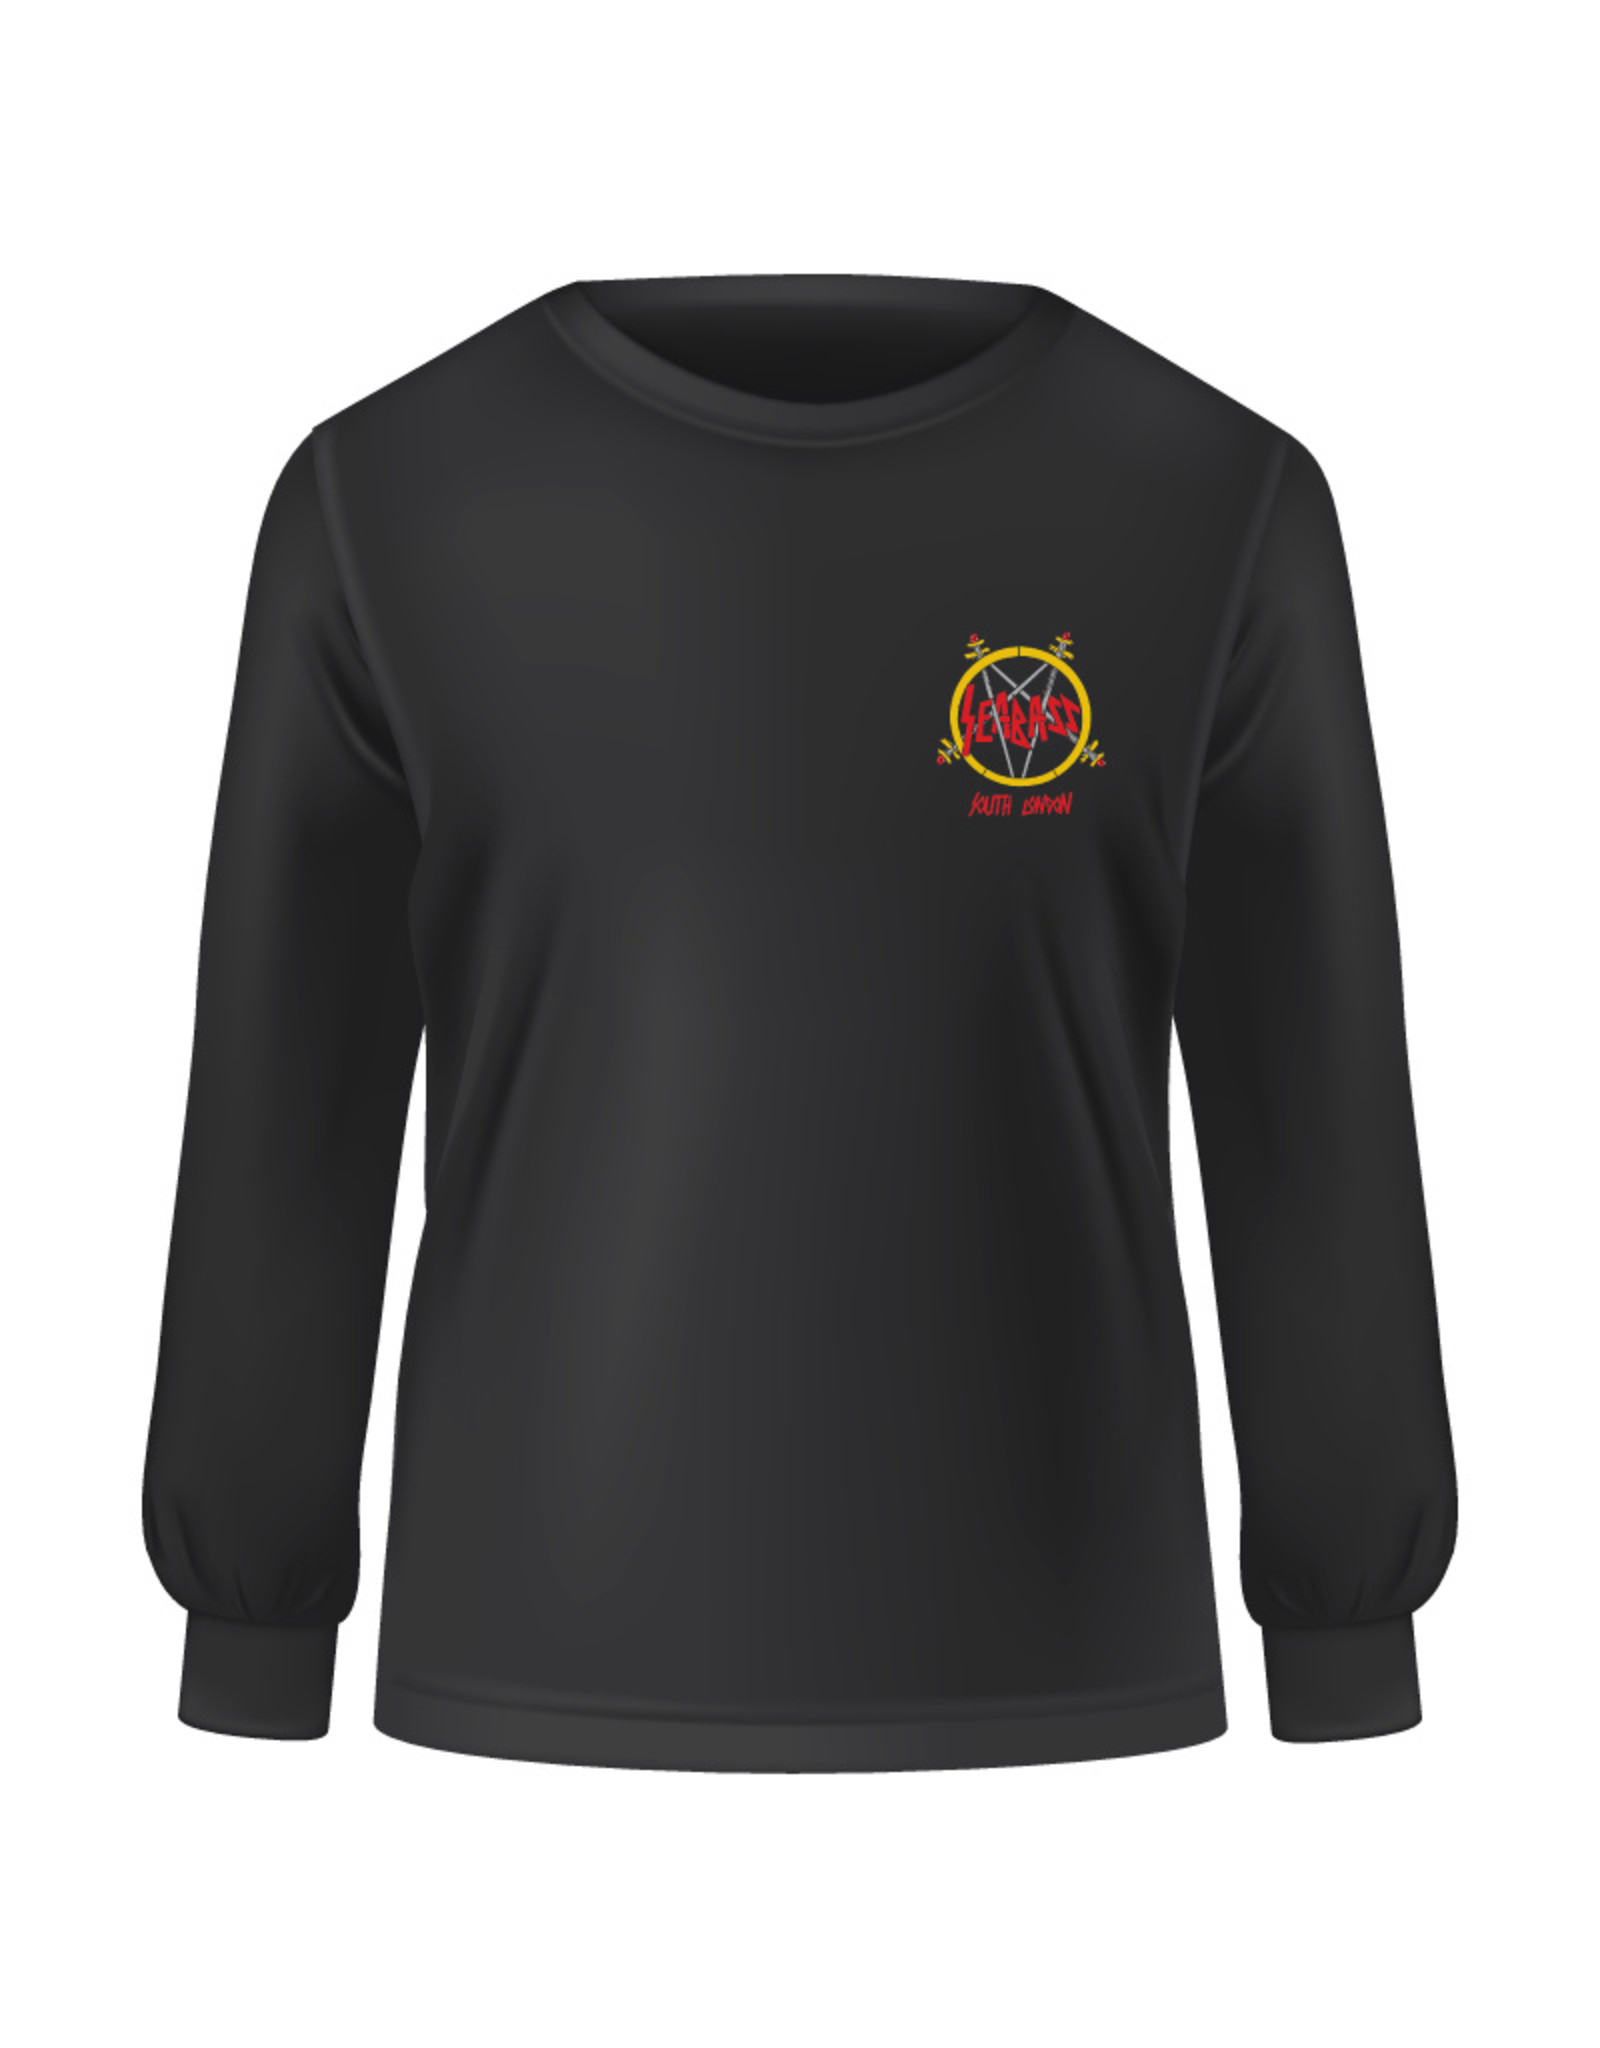 Seabass Cycles Seabass Cycles - Slayer Sweatshirt - Black